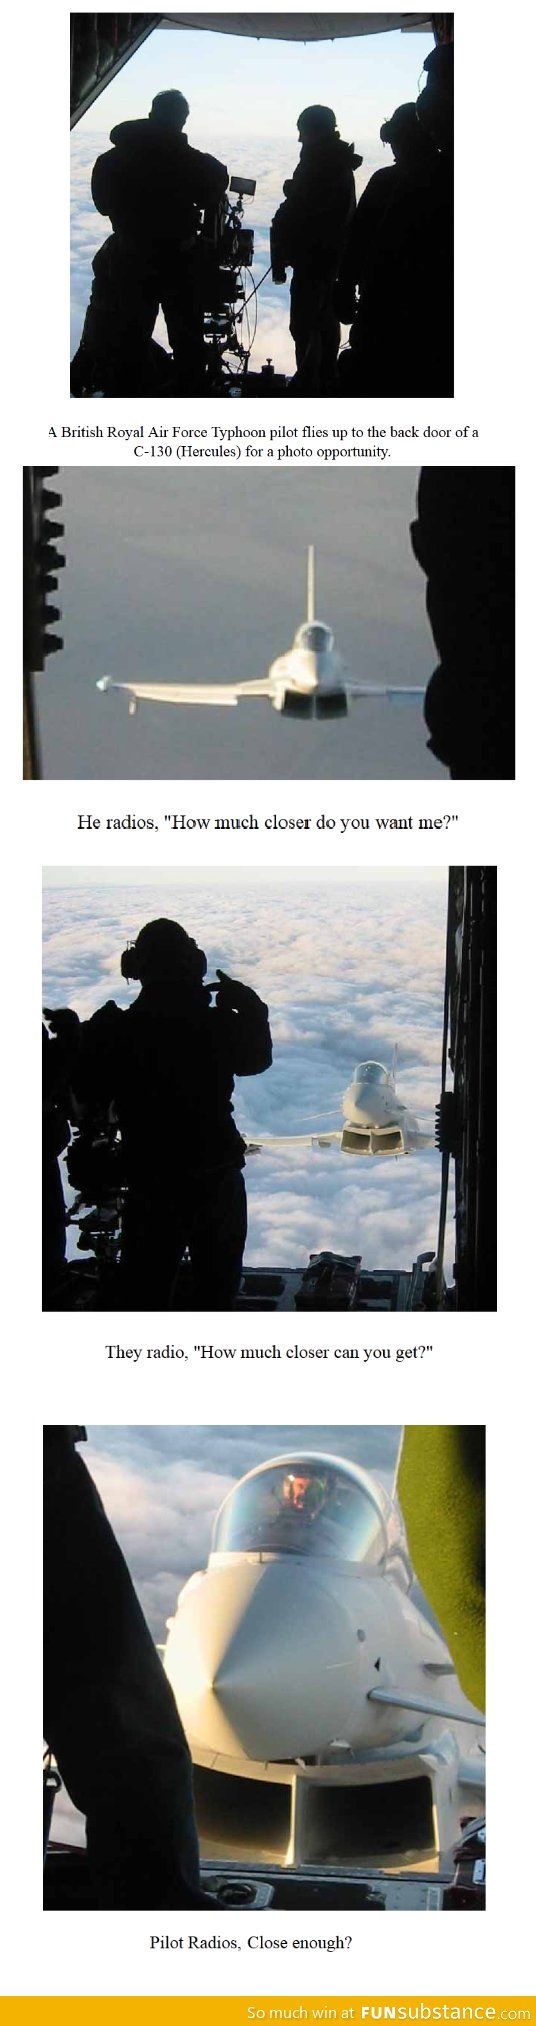 Photographing a fighter pilot